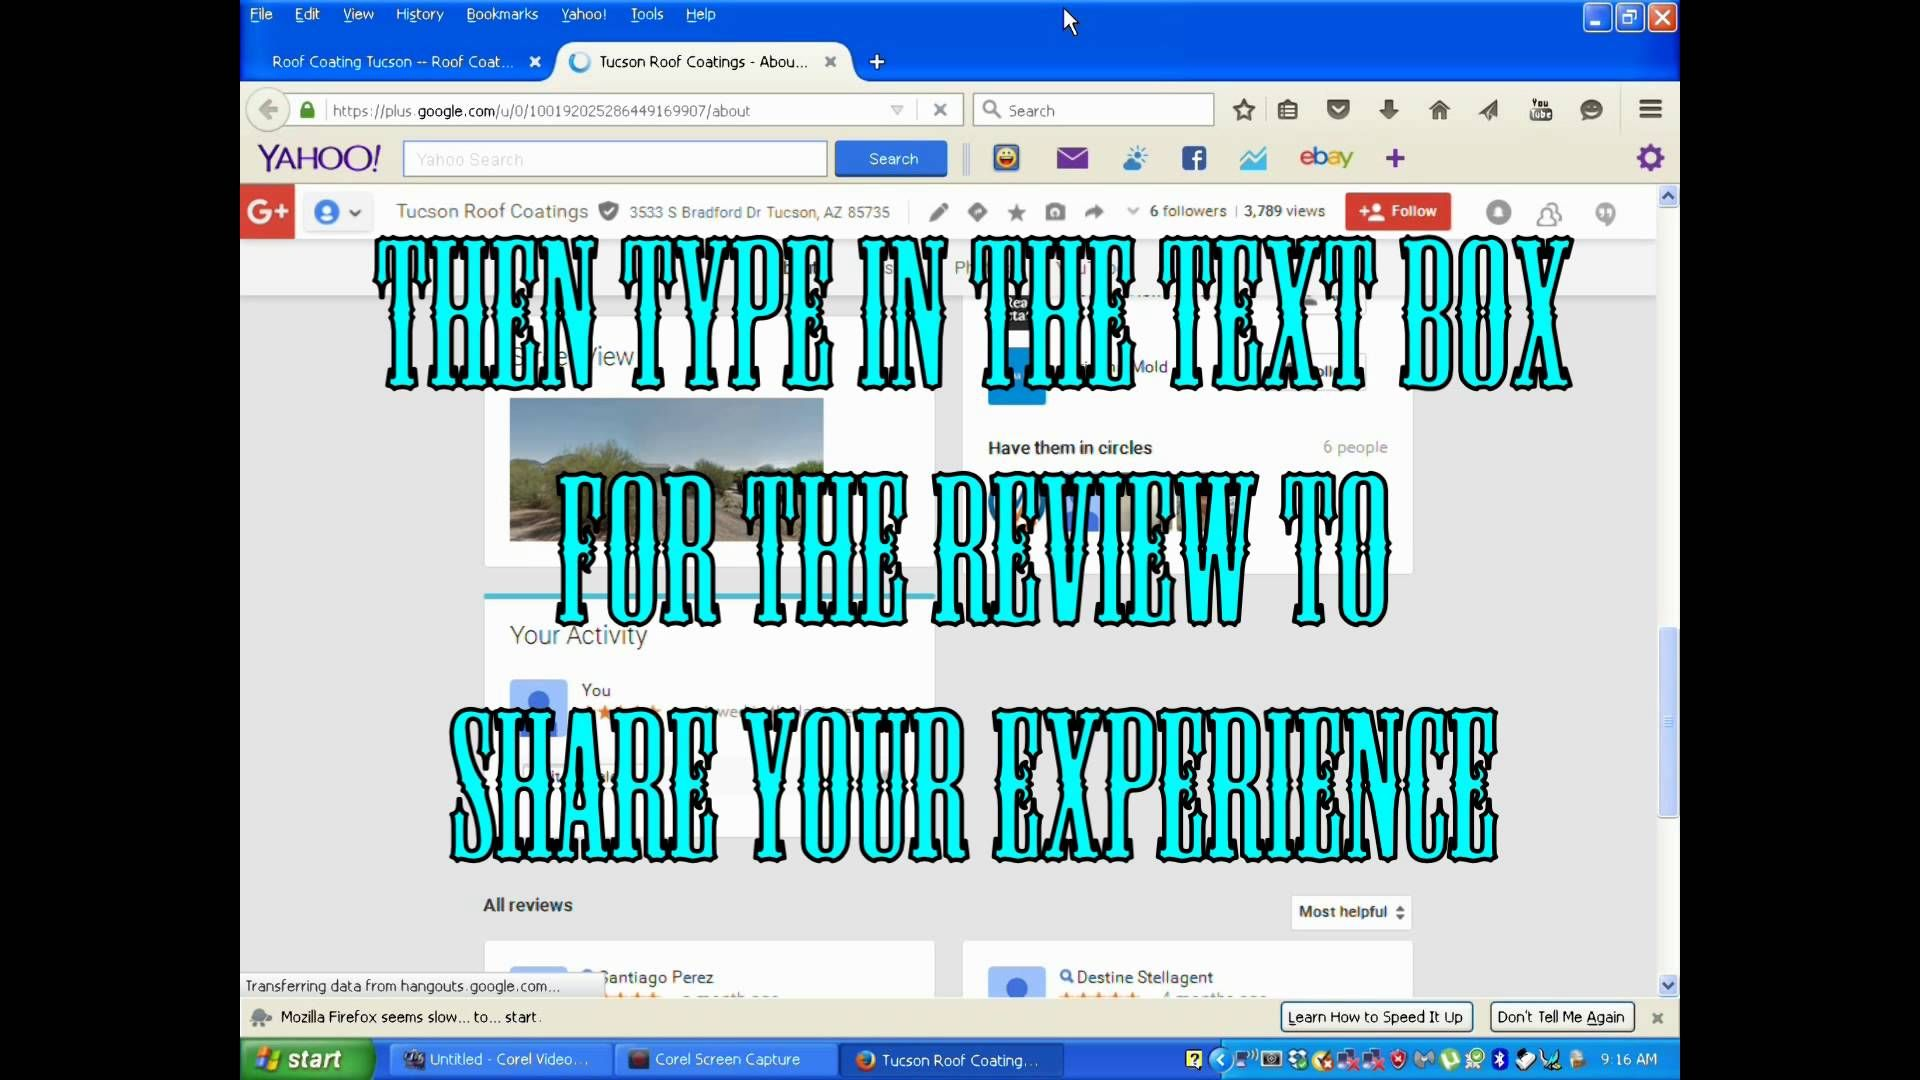 How To Google Review On A Laptop Computer Tucson Roof Coatings LLC... Roof  Coating Tucson One Roof At A Time Tucson Roof Coatings LLC 520 314 7811u2026